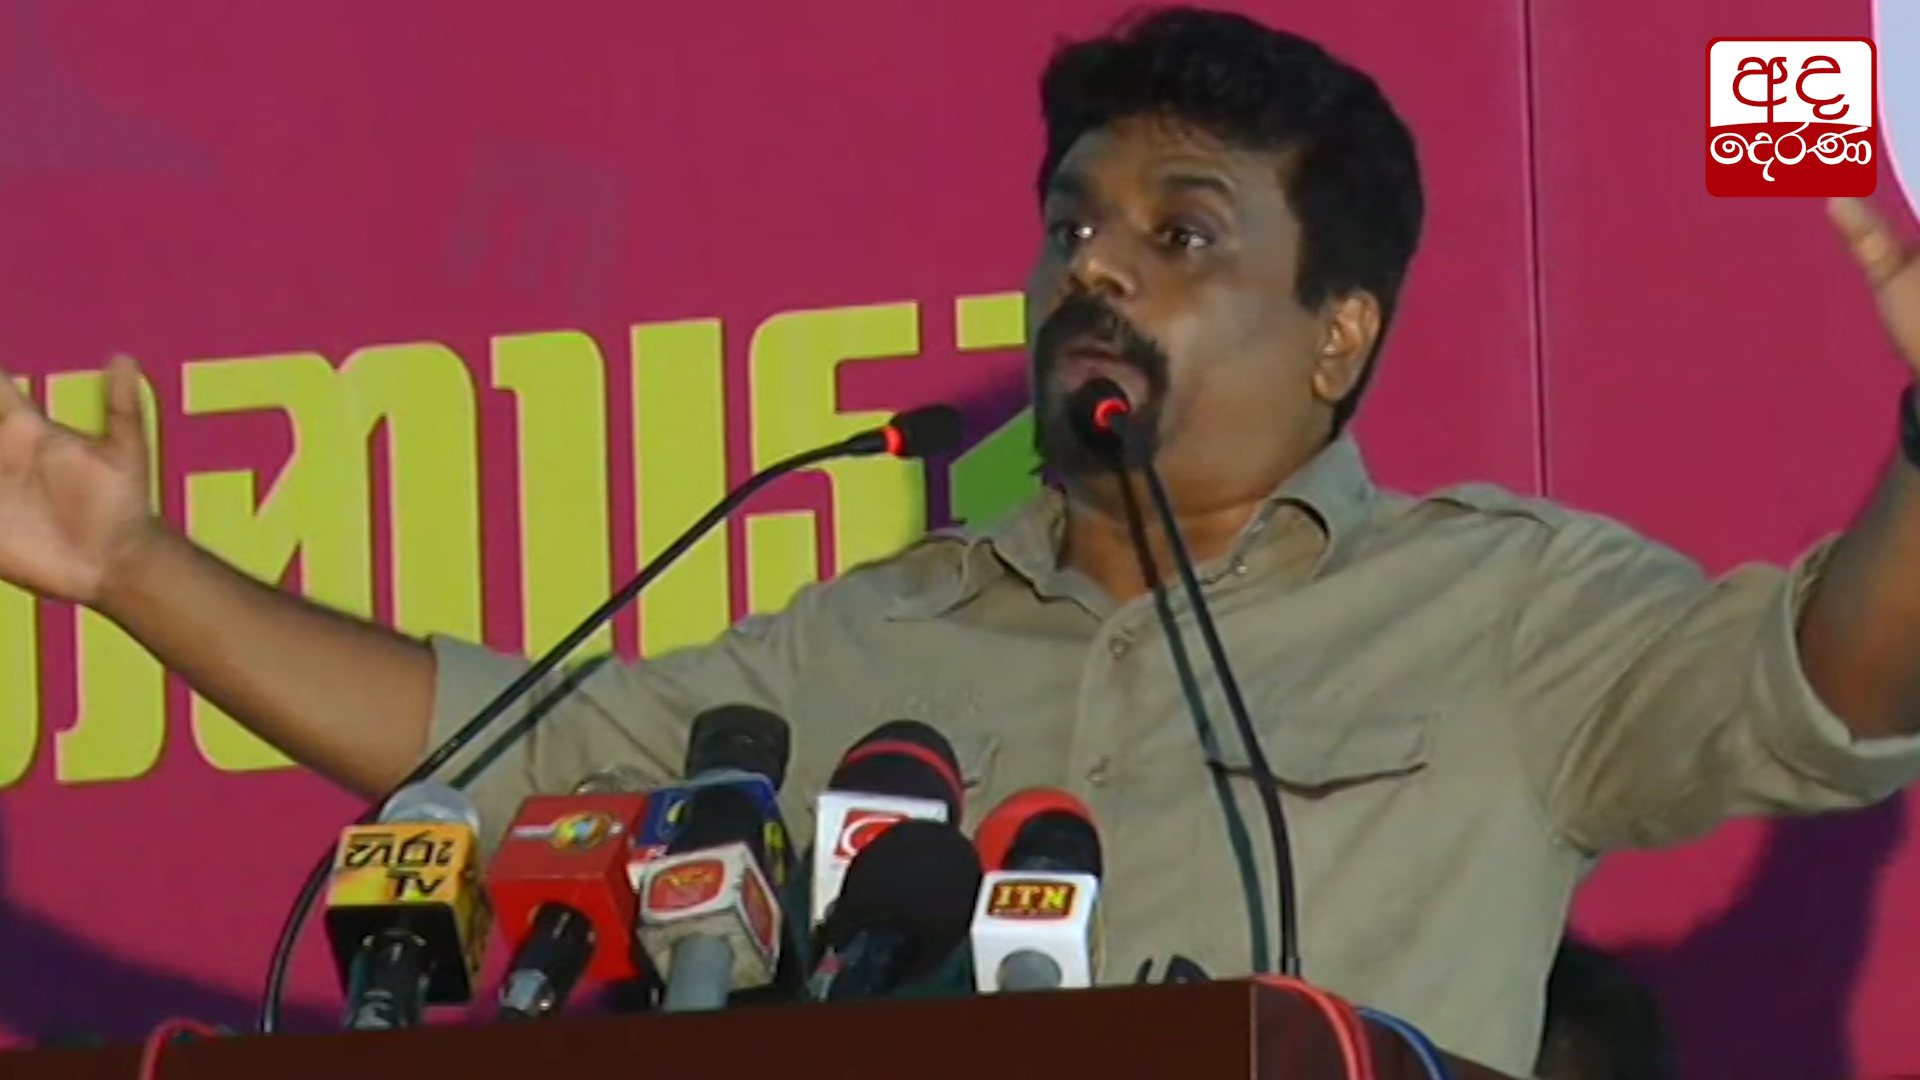 Give us the chance to build the country - Anura